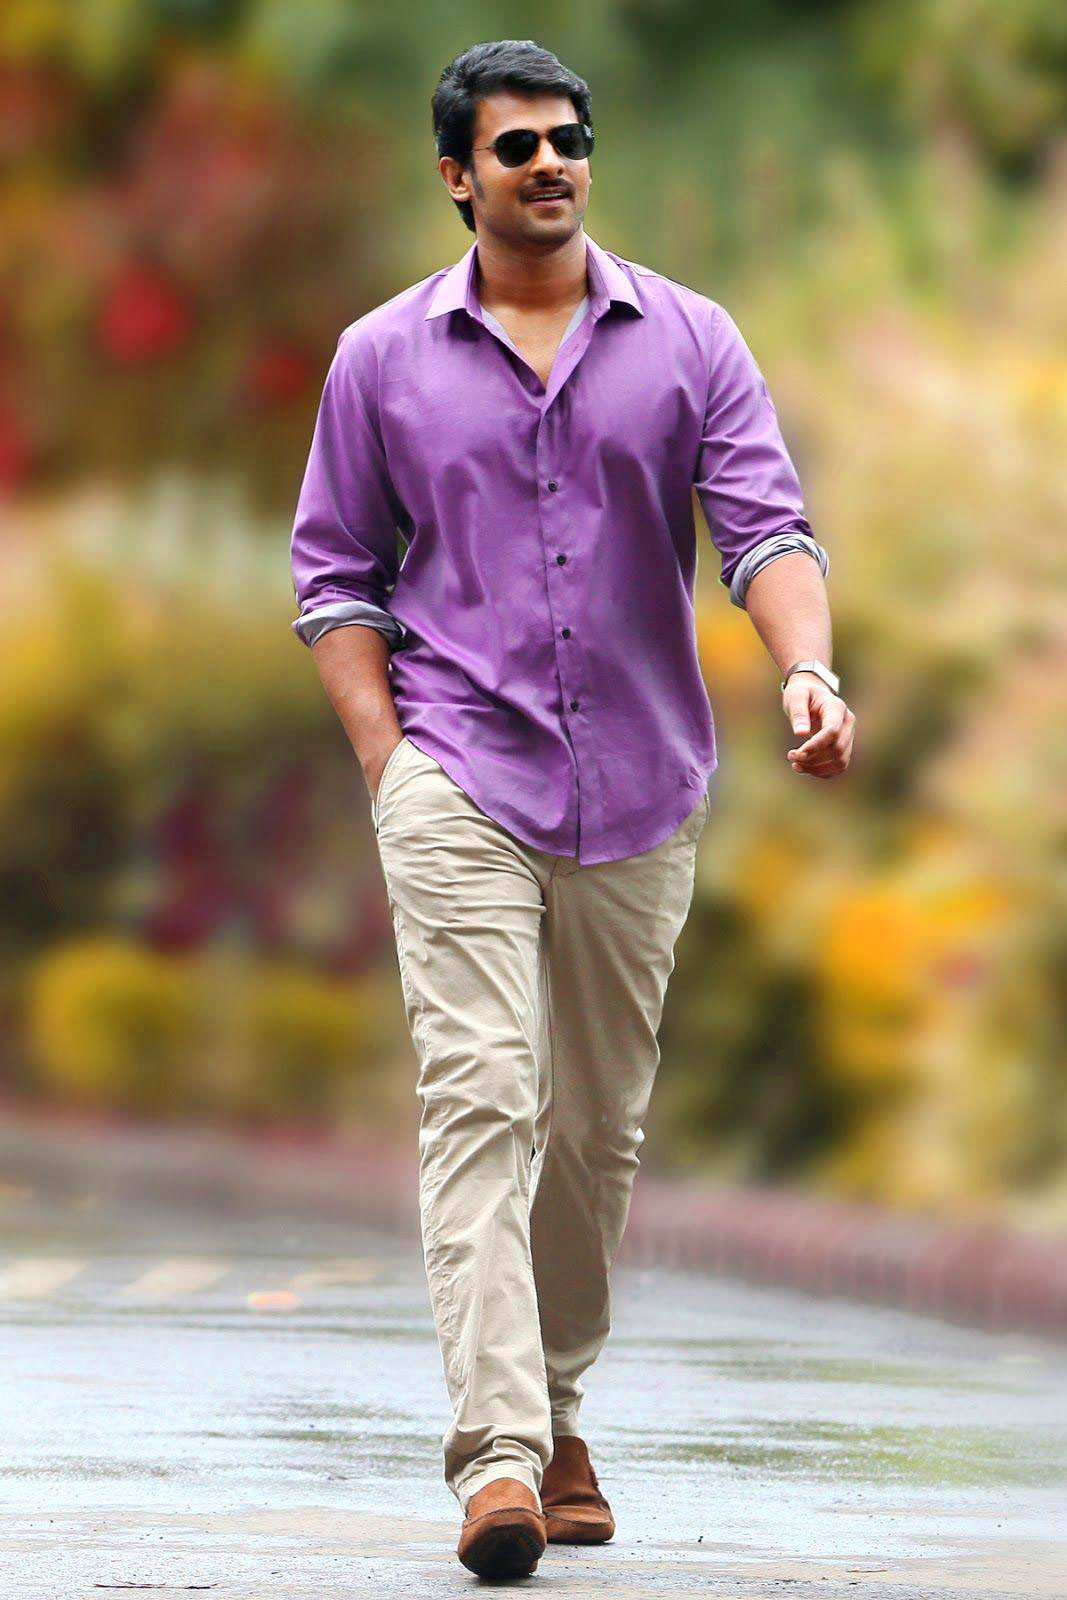 Latest Superstar Prabhas Images photo pics for facebook